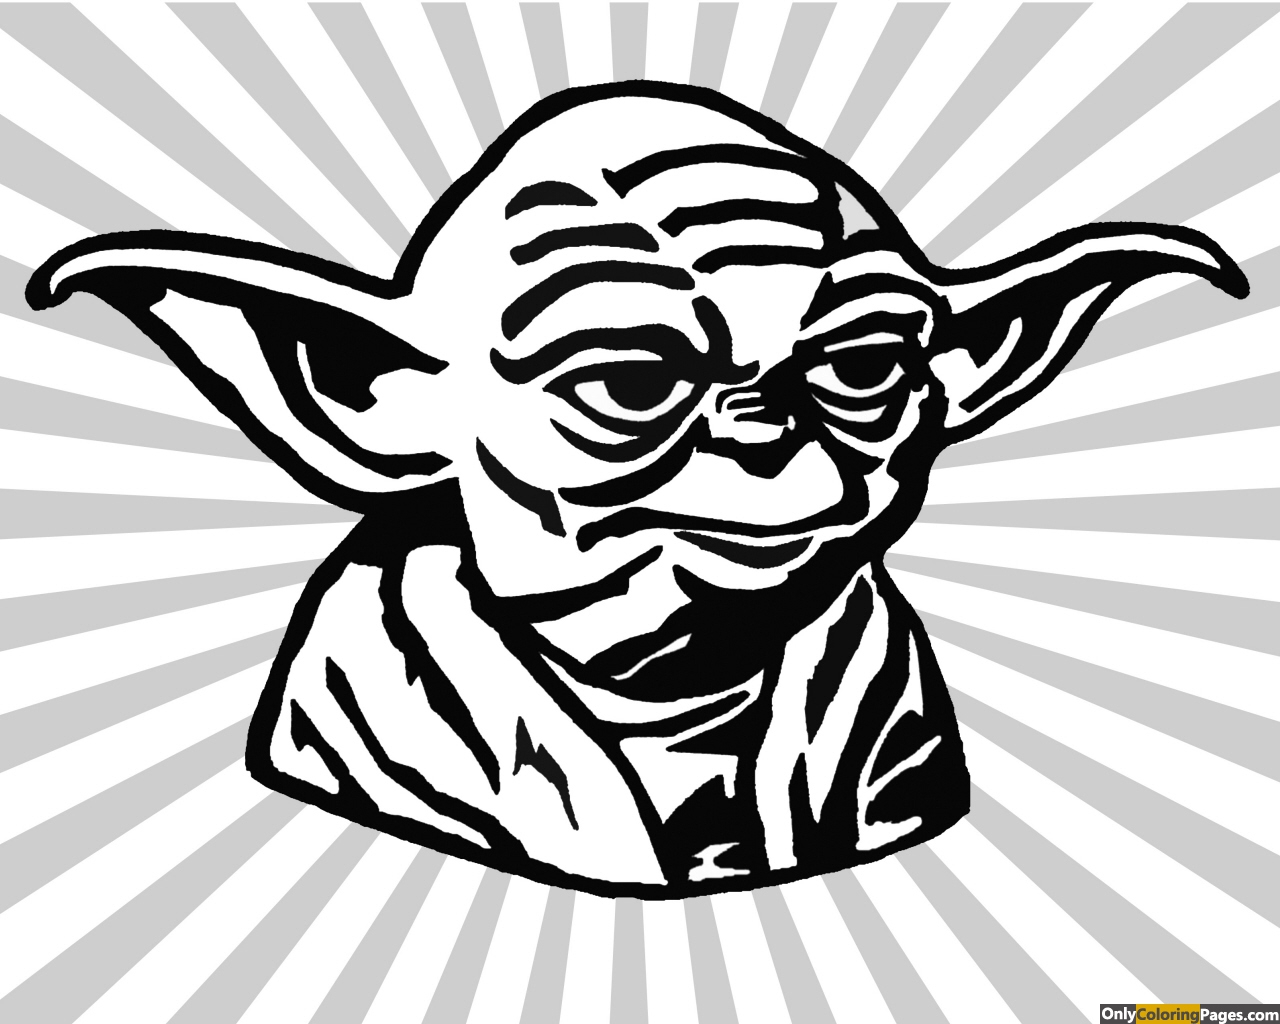 yoda-face-coloring-pages-01